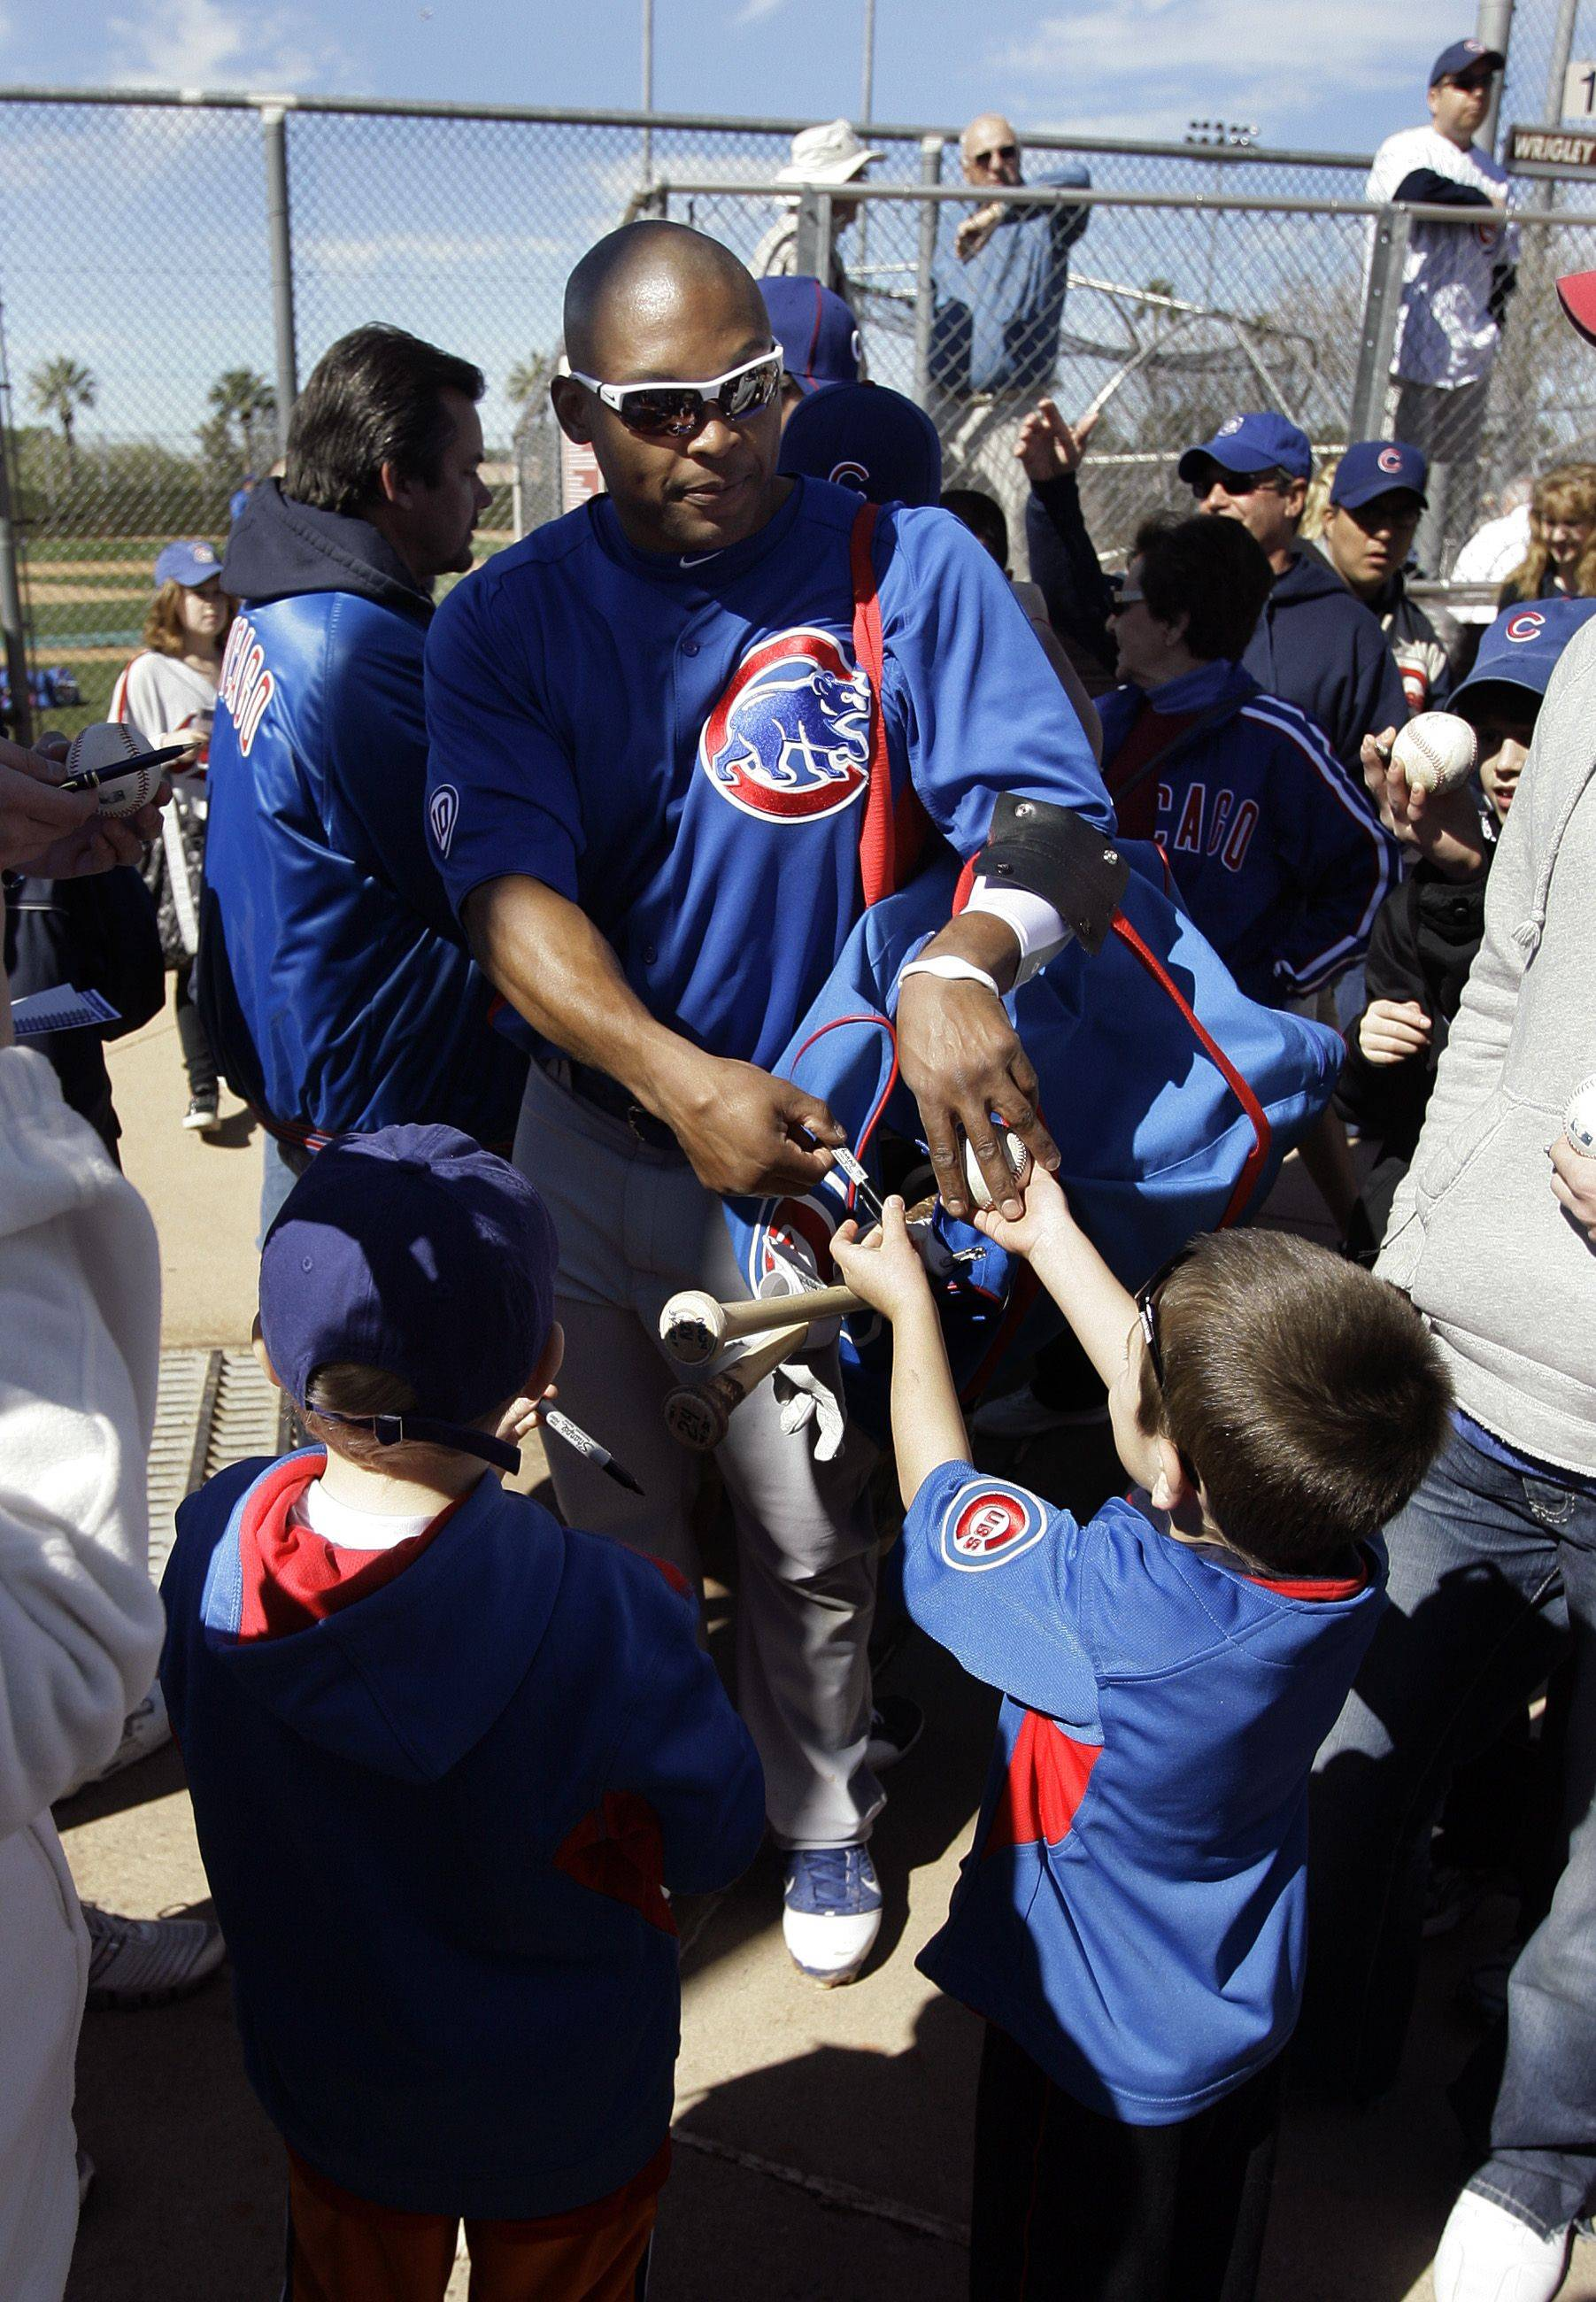 Chicago Cubs outfielder Marlon Byrd hands the autographed baseball he signed back to Tim Beverly, 4, of Framingham, Mass., following batting practice during baseball spring training Monday, Feb. 21, 2011, in Mesa, Ariz.